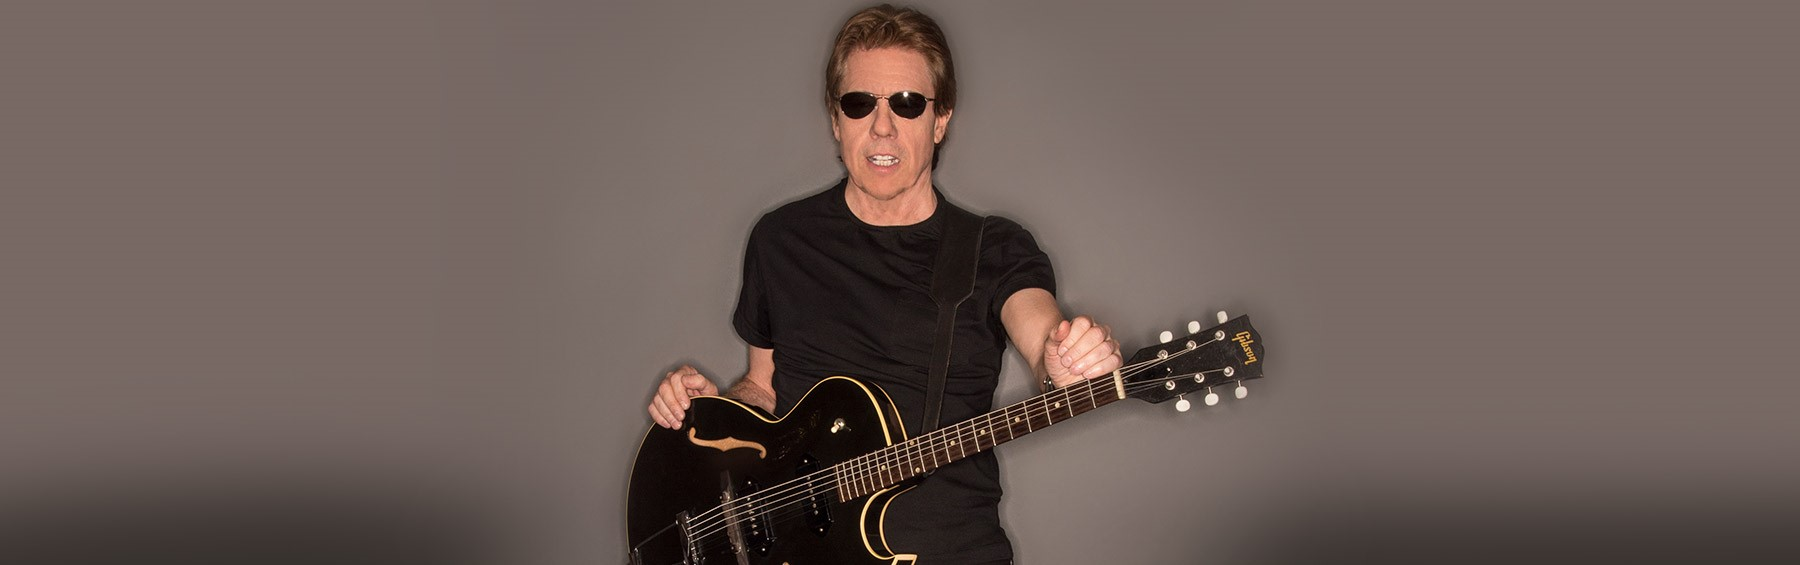 George Thorogood & The Destroyers Rock Party